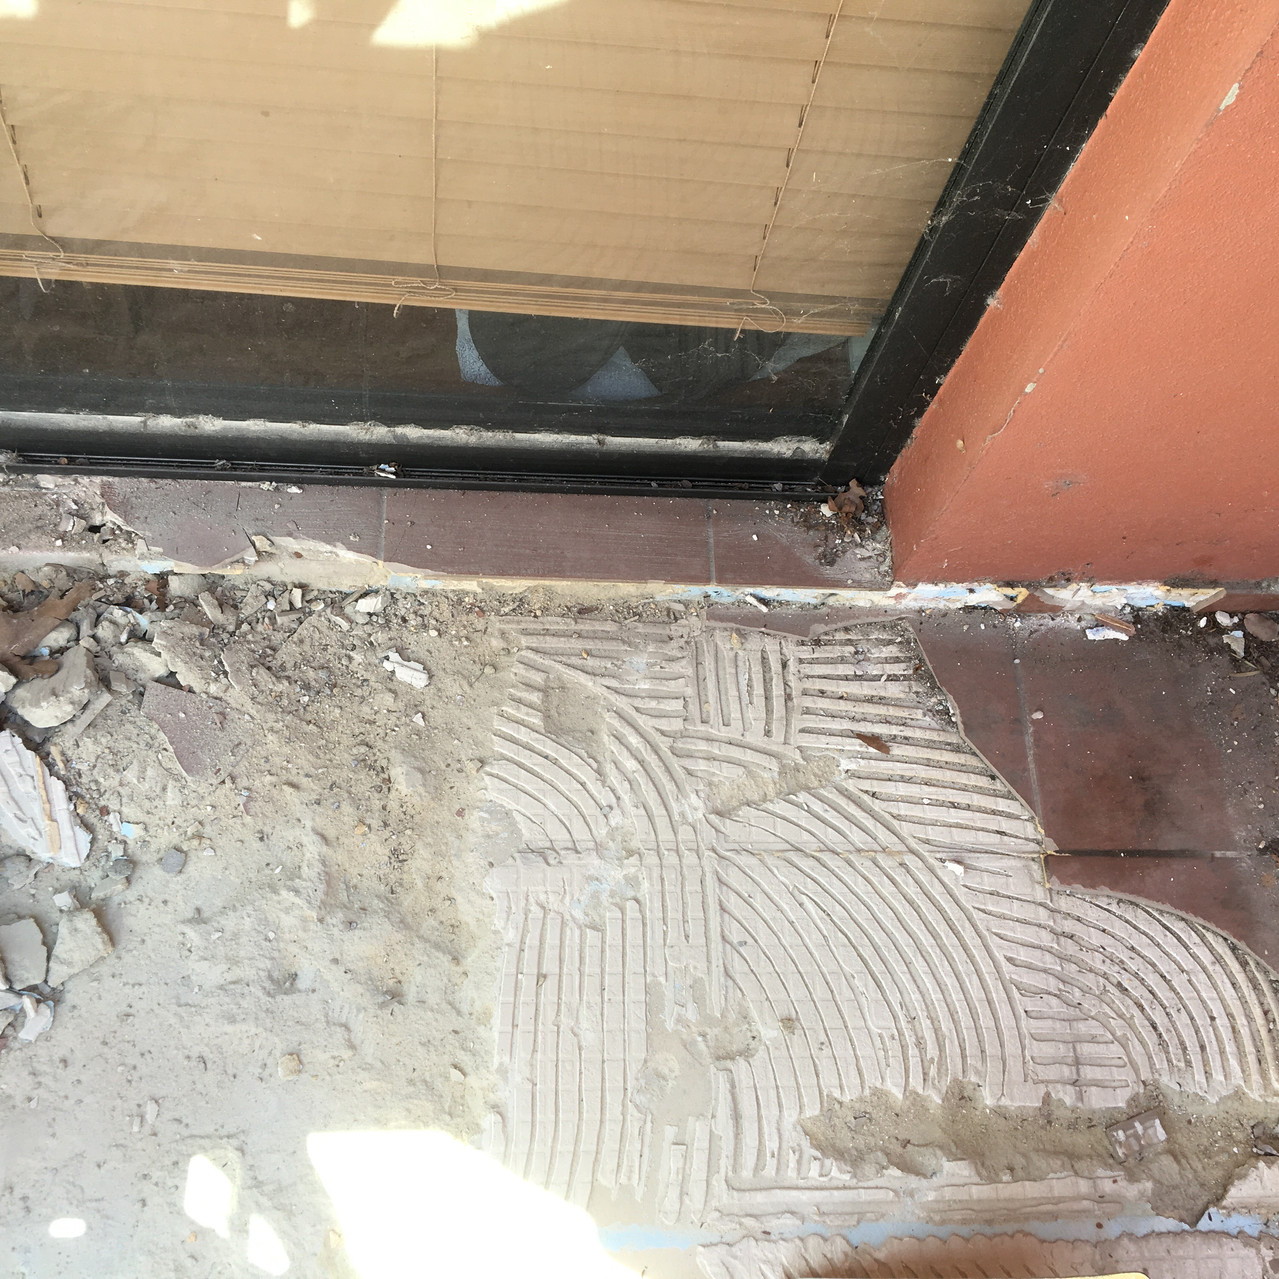 Conspar works to help rectify a water ingress problem being experienced at this Northbridge apartment involved removing tiles and screed of the private balcony due to a failed / inexistent waterproof membrane.